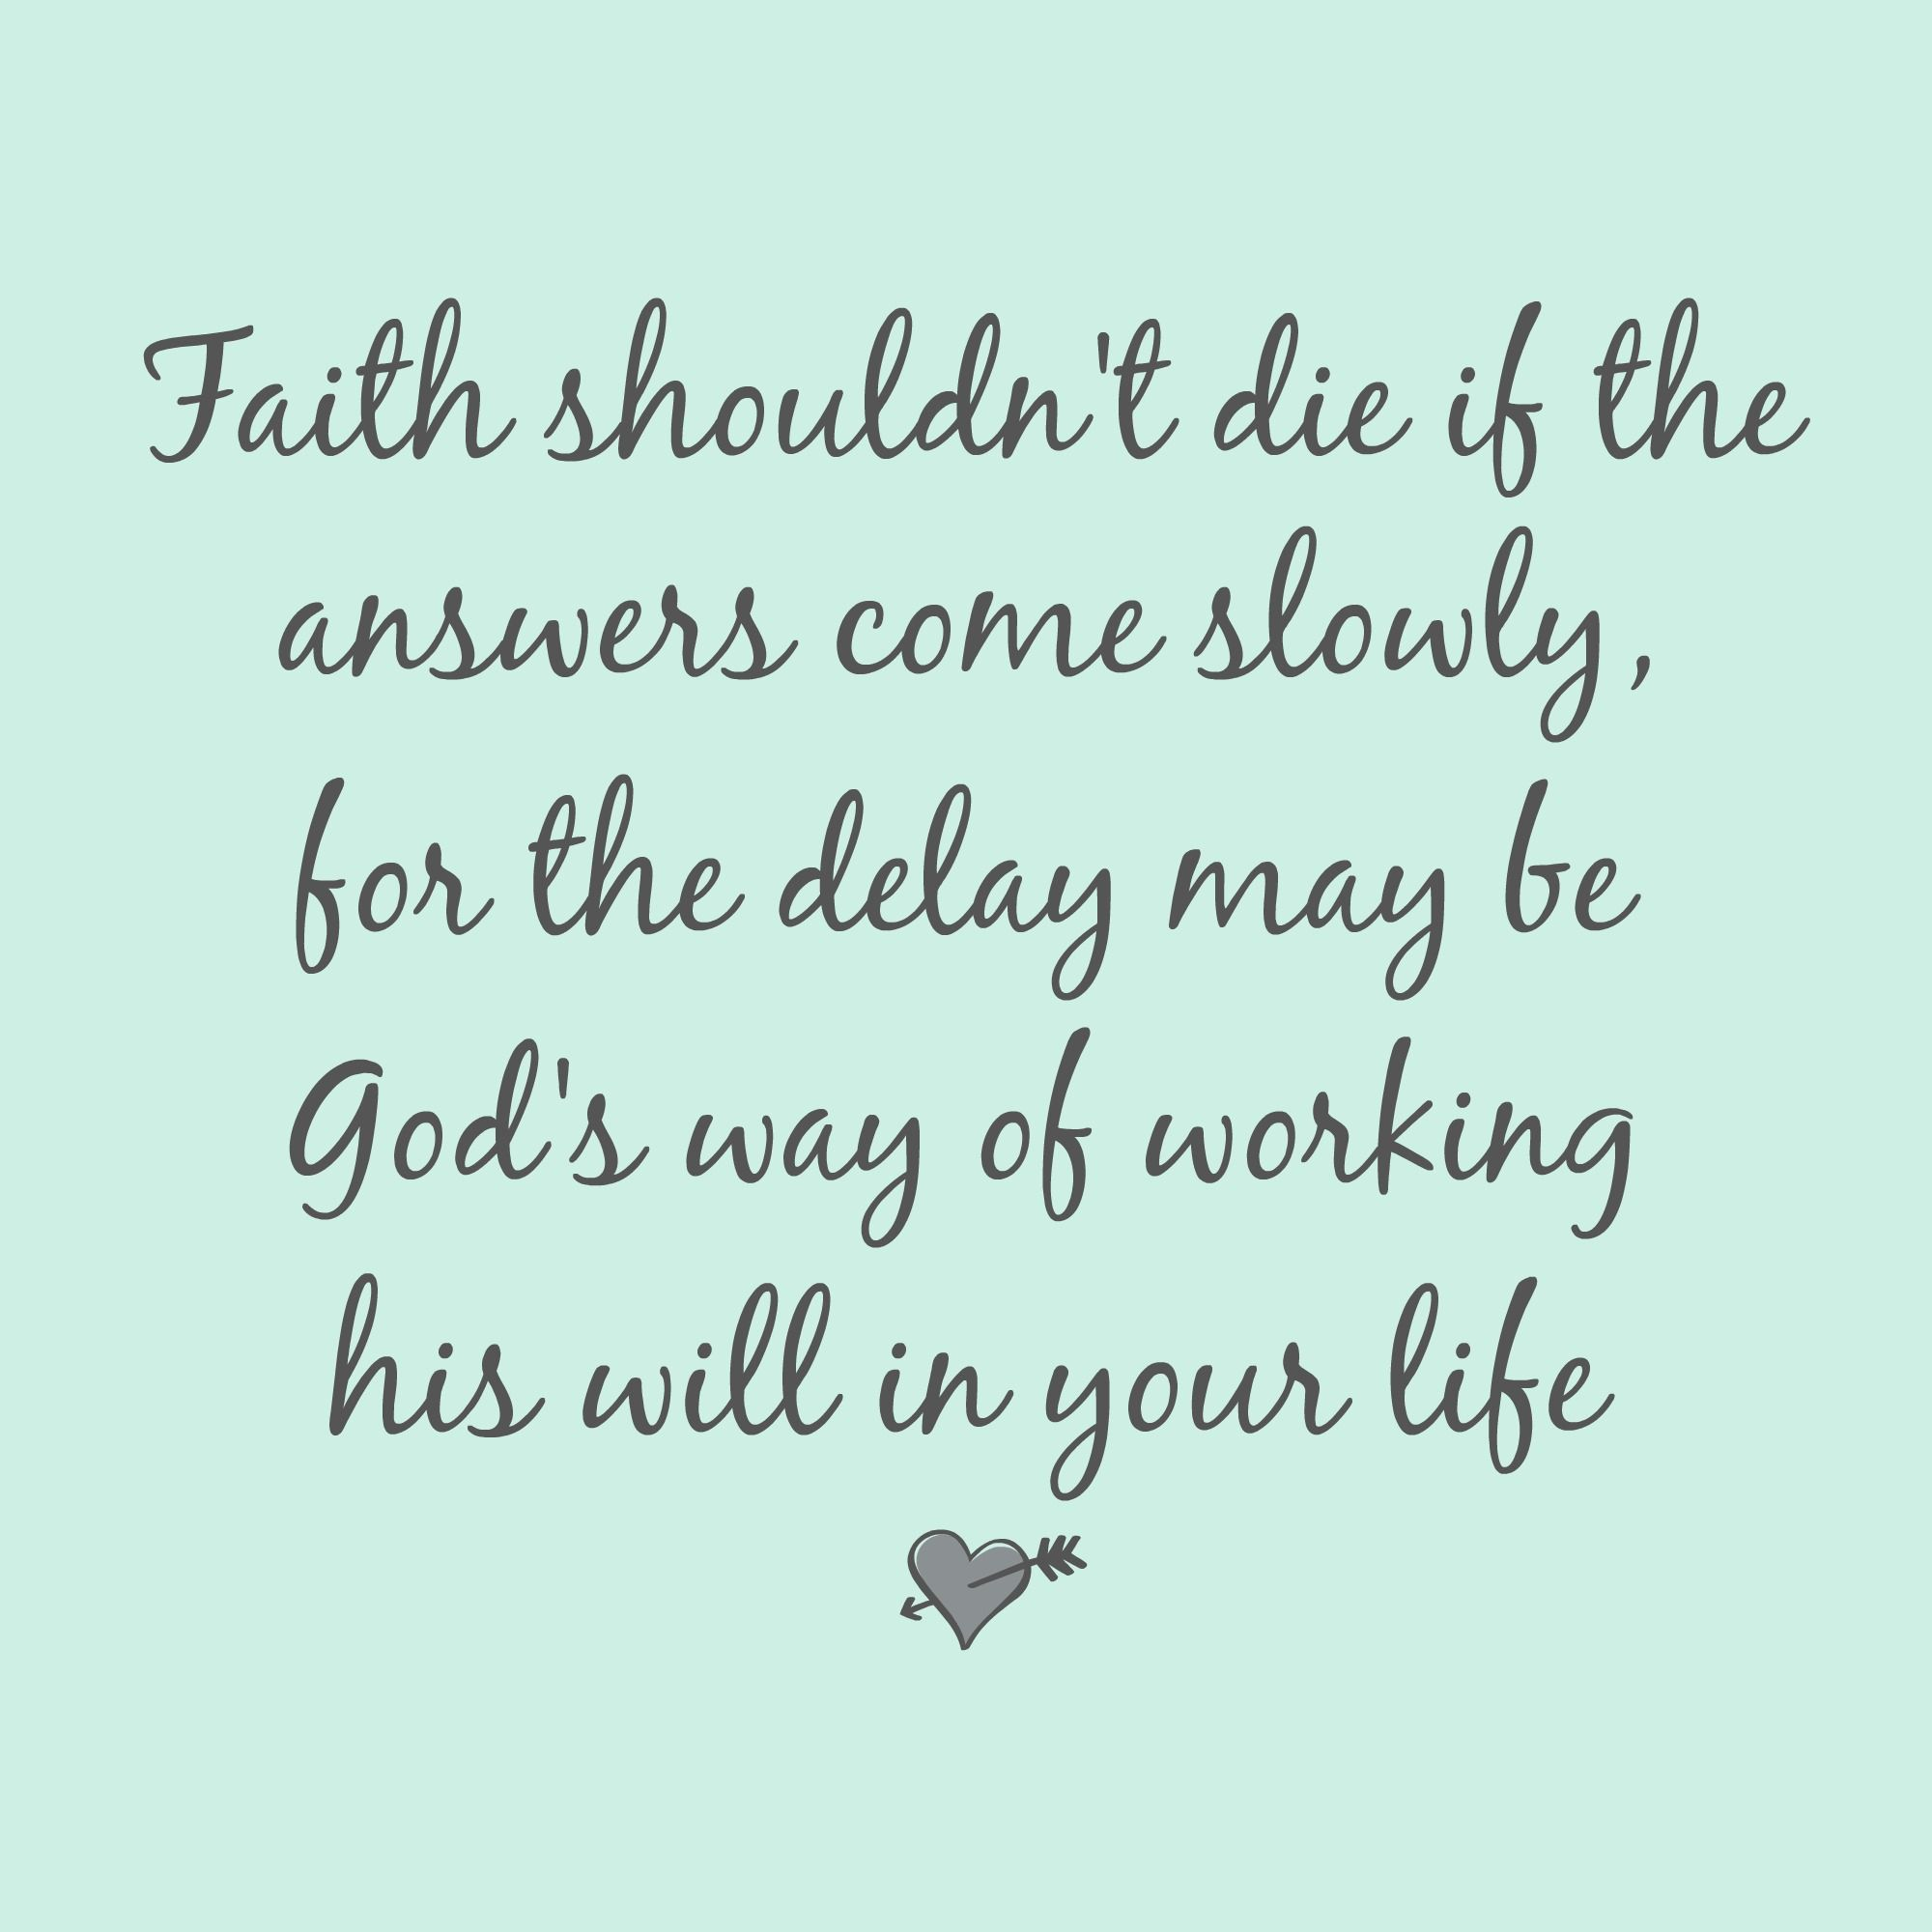 Quotes About Faith Great Inspirational Quotes From Footprints Of Inspirationfaith